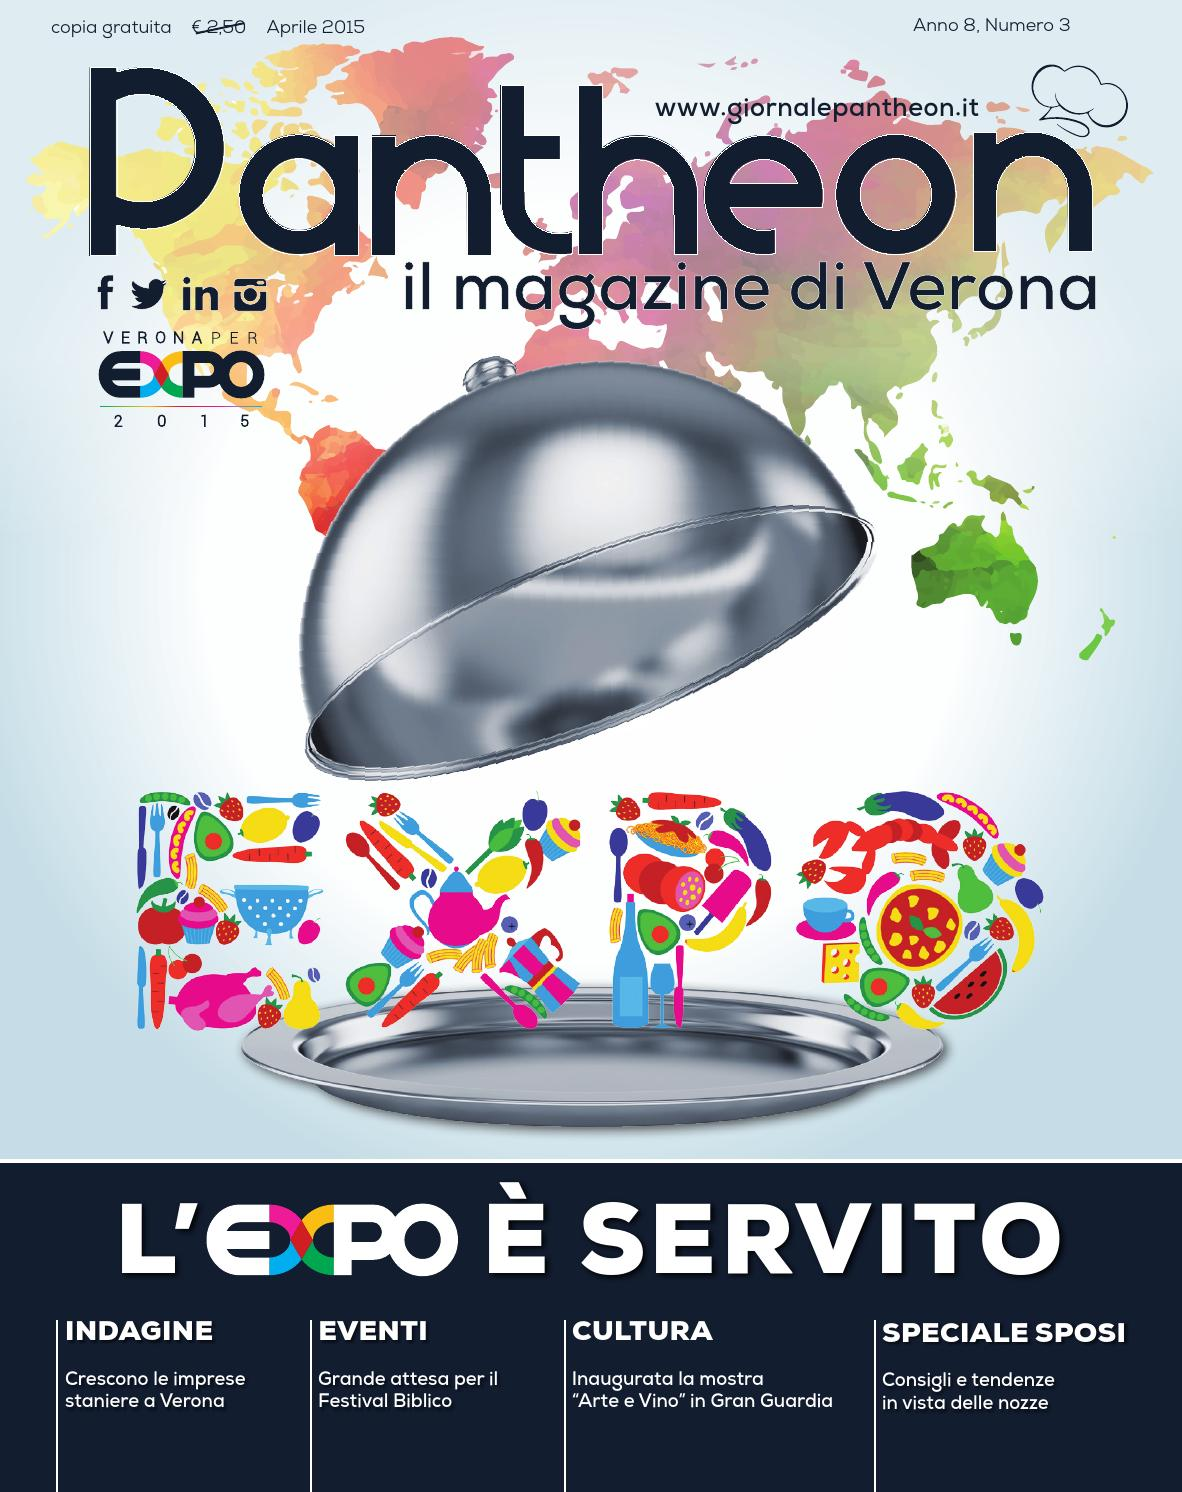 Pantheon 59 - L Expo è servito by Pantheon Verona Network - issuu fb75b5fe1453